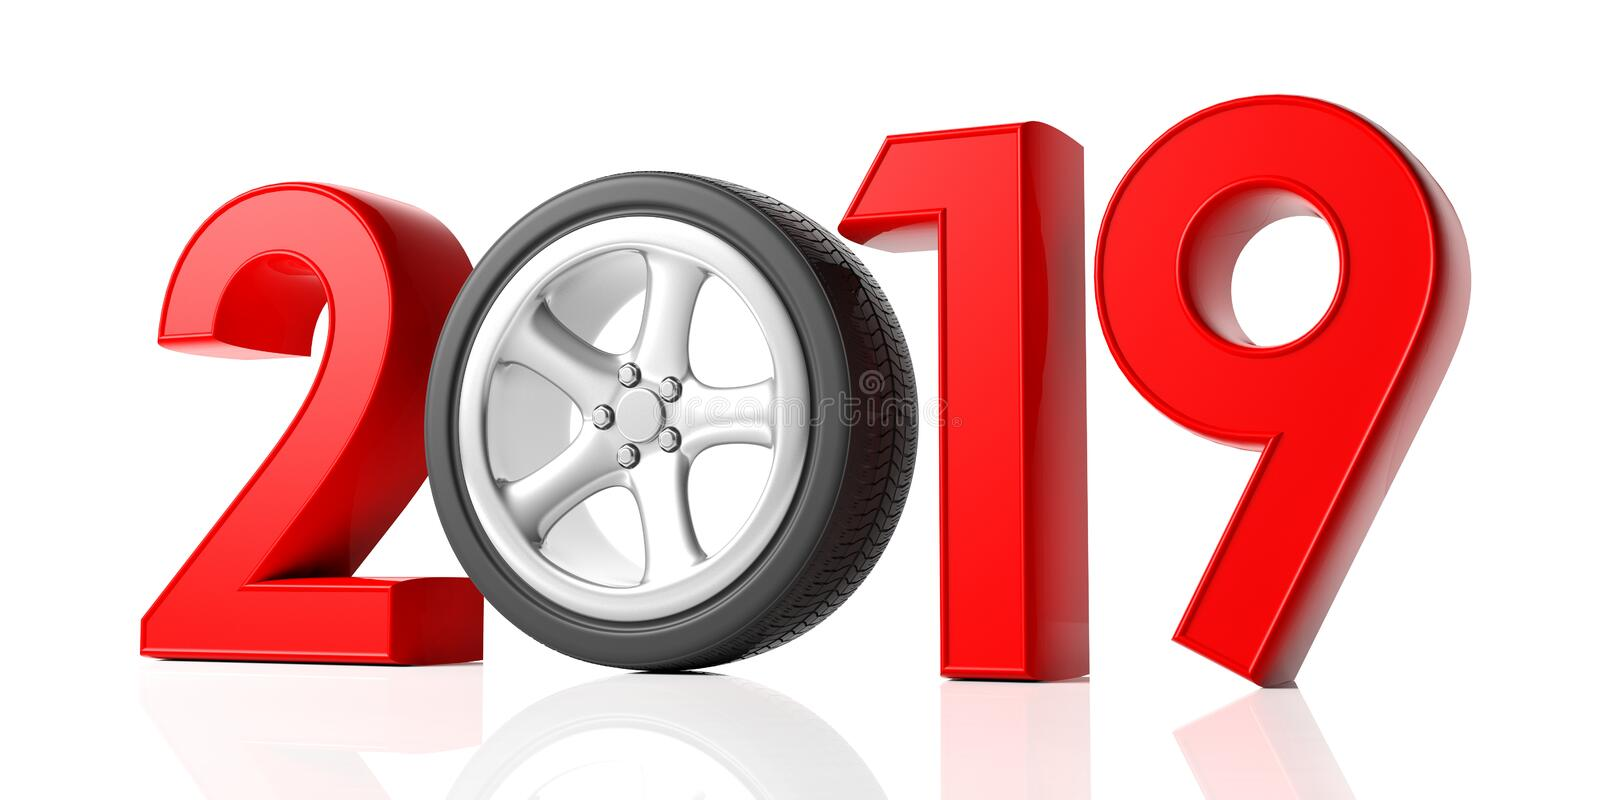 New year 2019 with car`s wheel isolated on white background. 3d illustration stock illustration